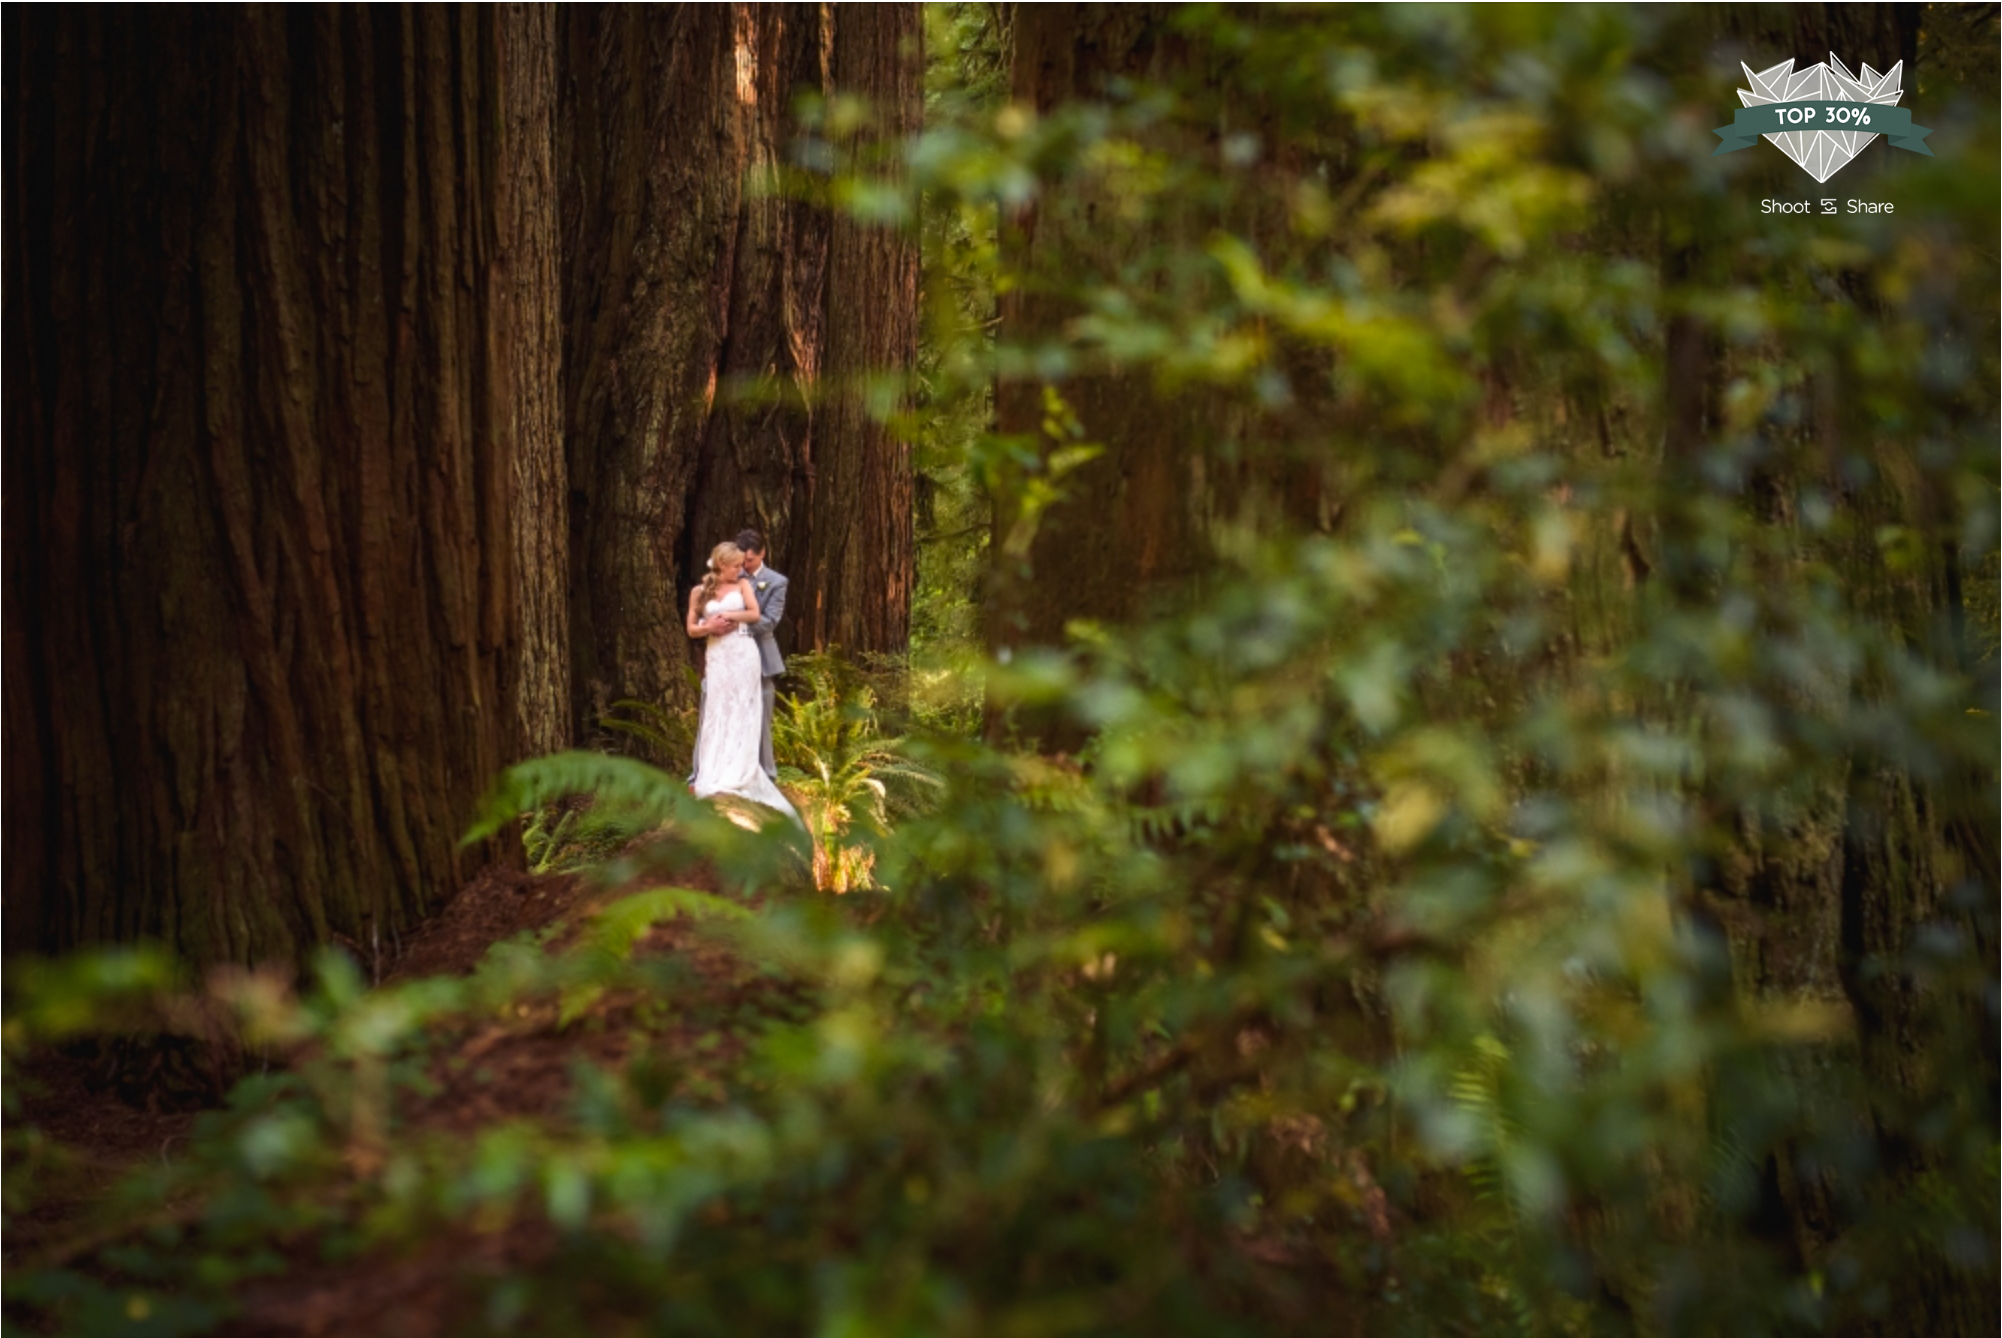 Redwood Forest Wedding - The Wedding Couple - 8,484/ 35,527